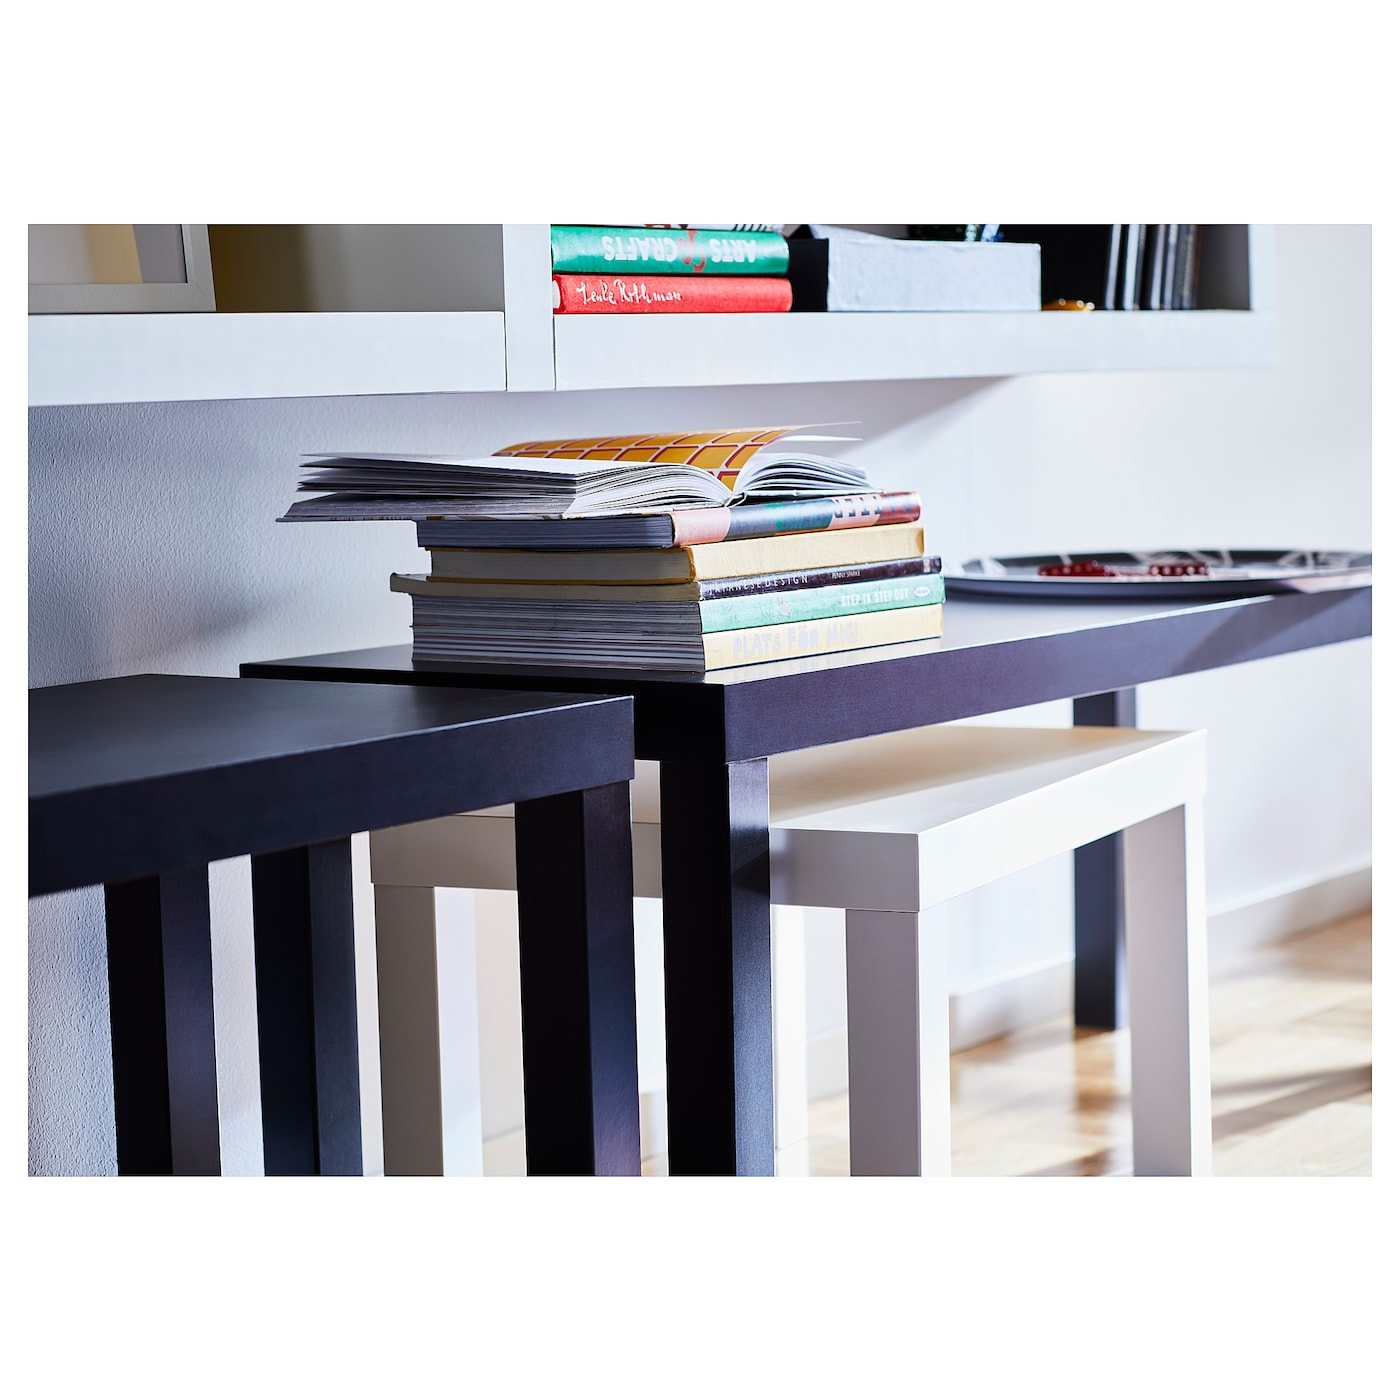 IKEA LACK nest of tables, set of 2 Can be used individually or be pushed together to save space.